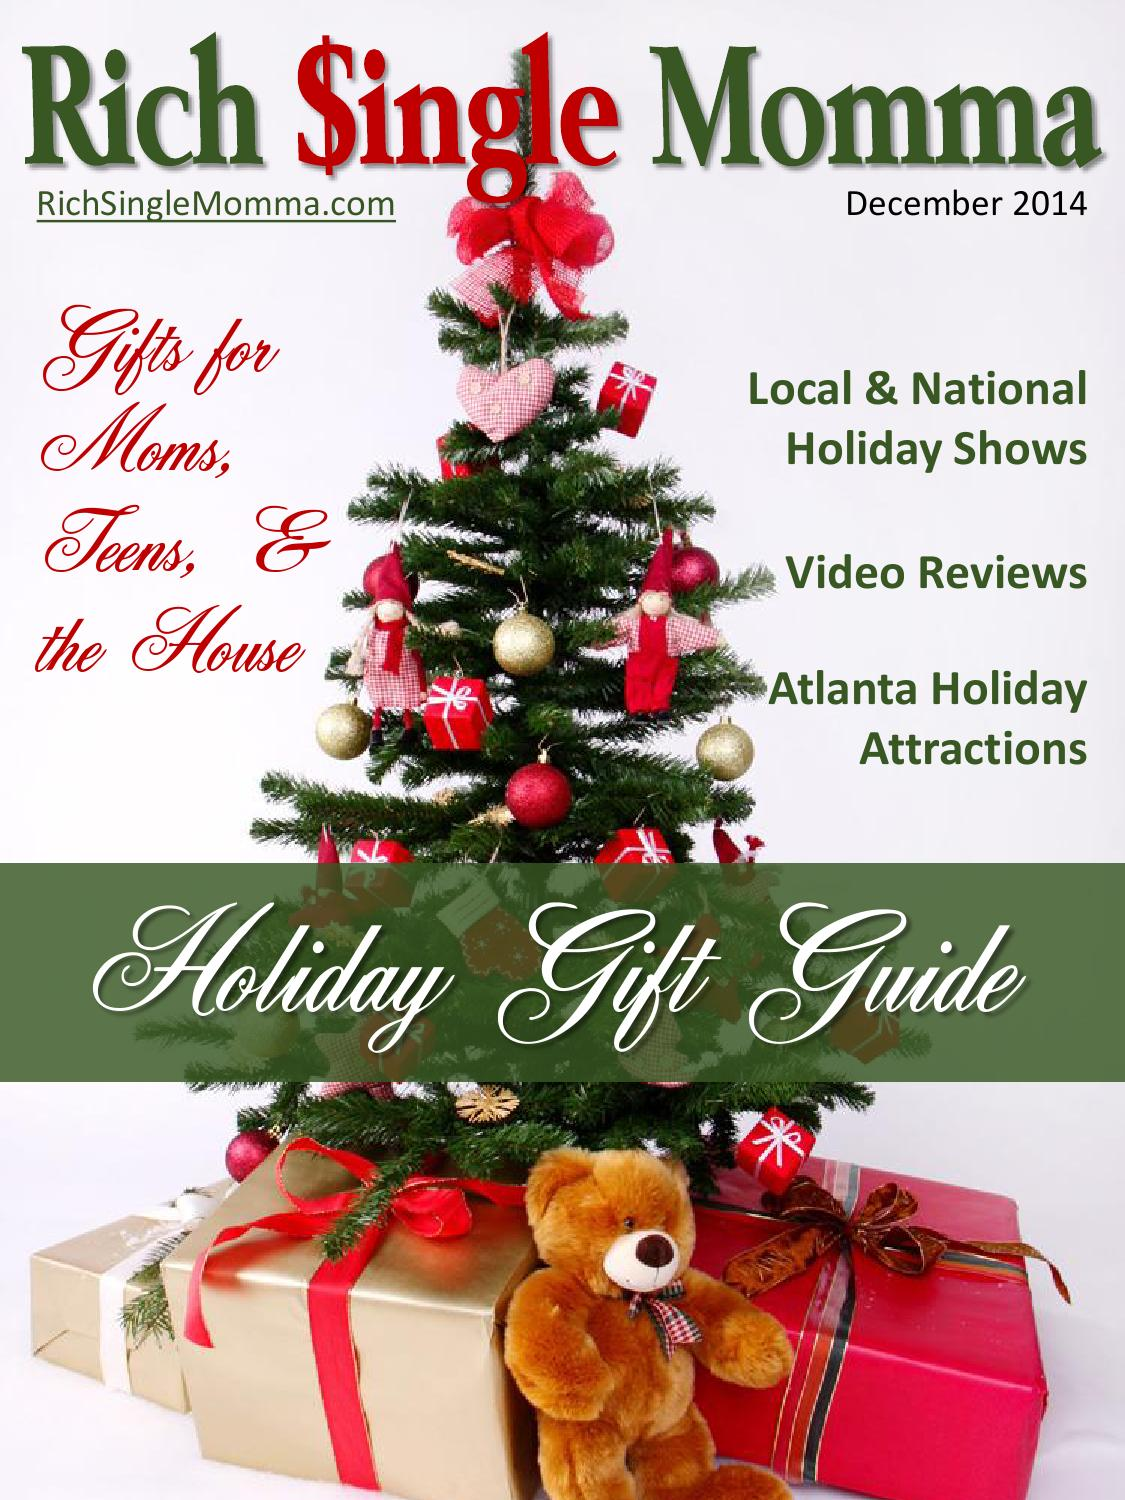 Rich Single Momma Holiday Gift Guide 2014 by Samantha Gregory - issuu